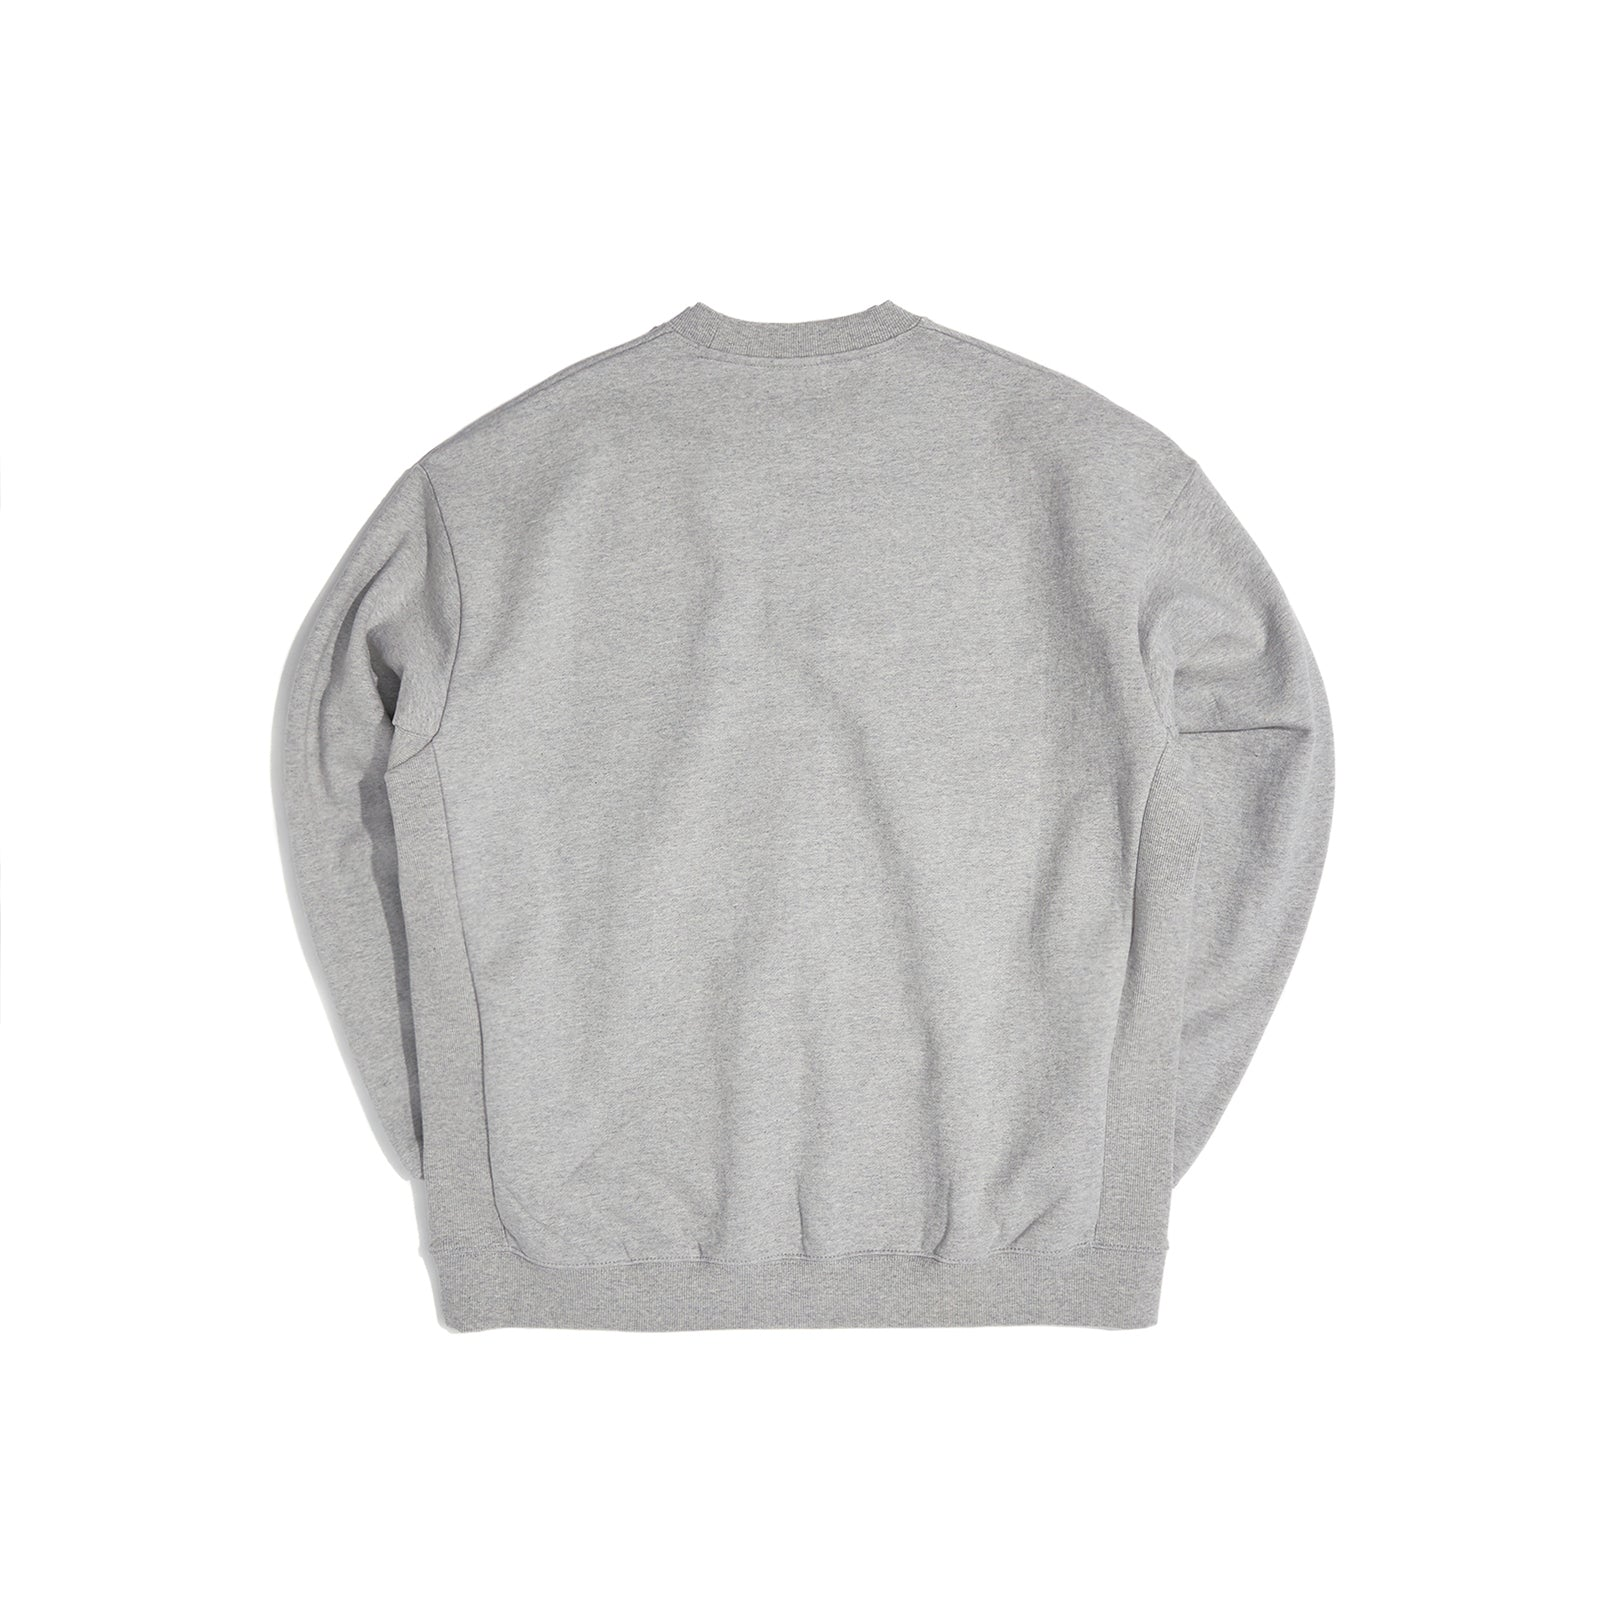 W LOGO SWEATSHIRT (GREY)